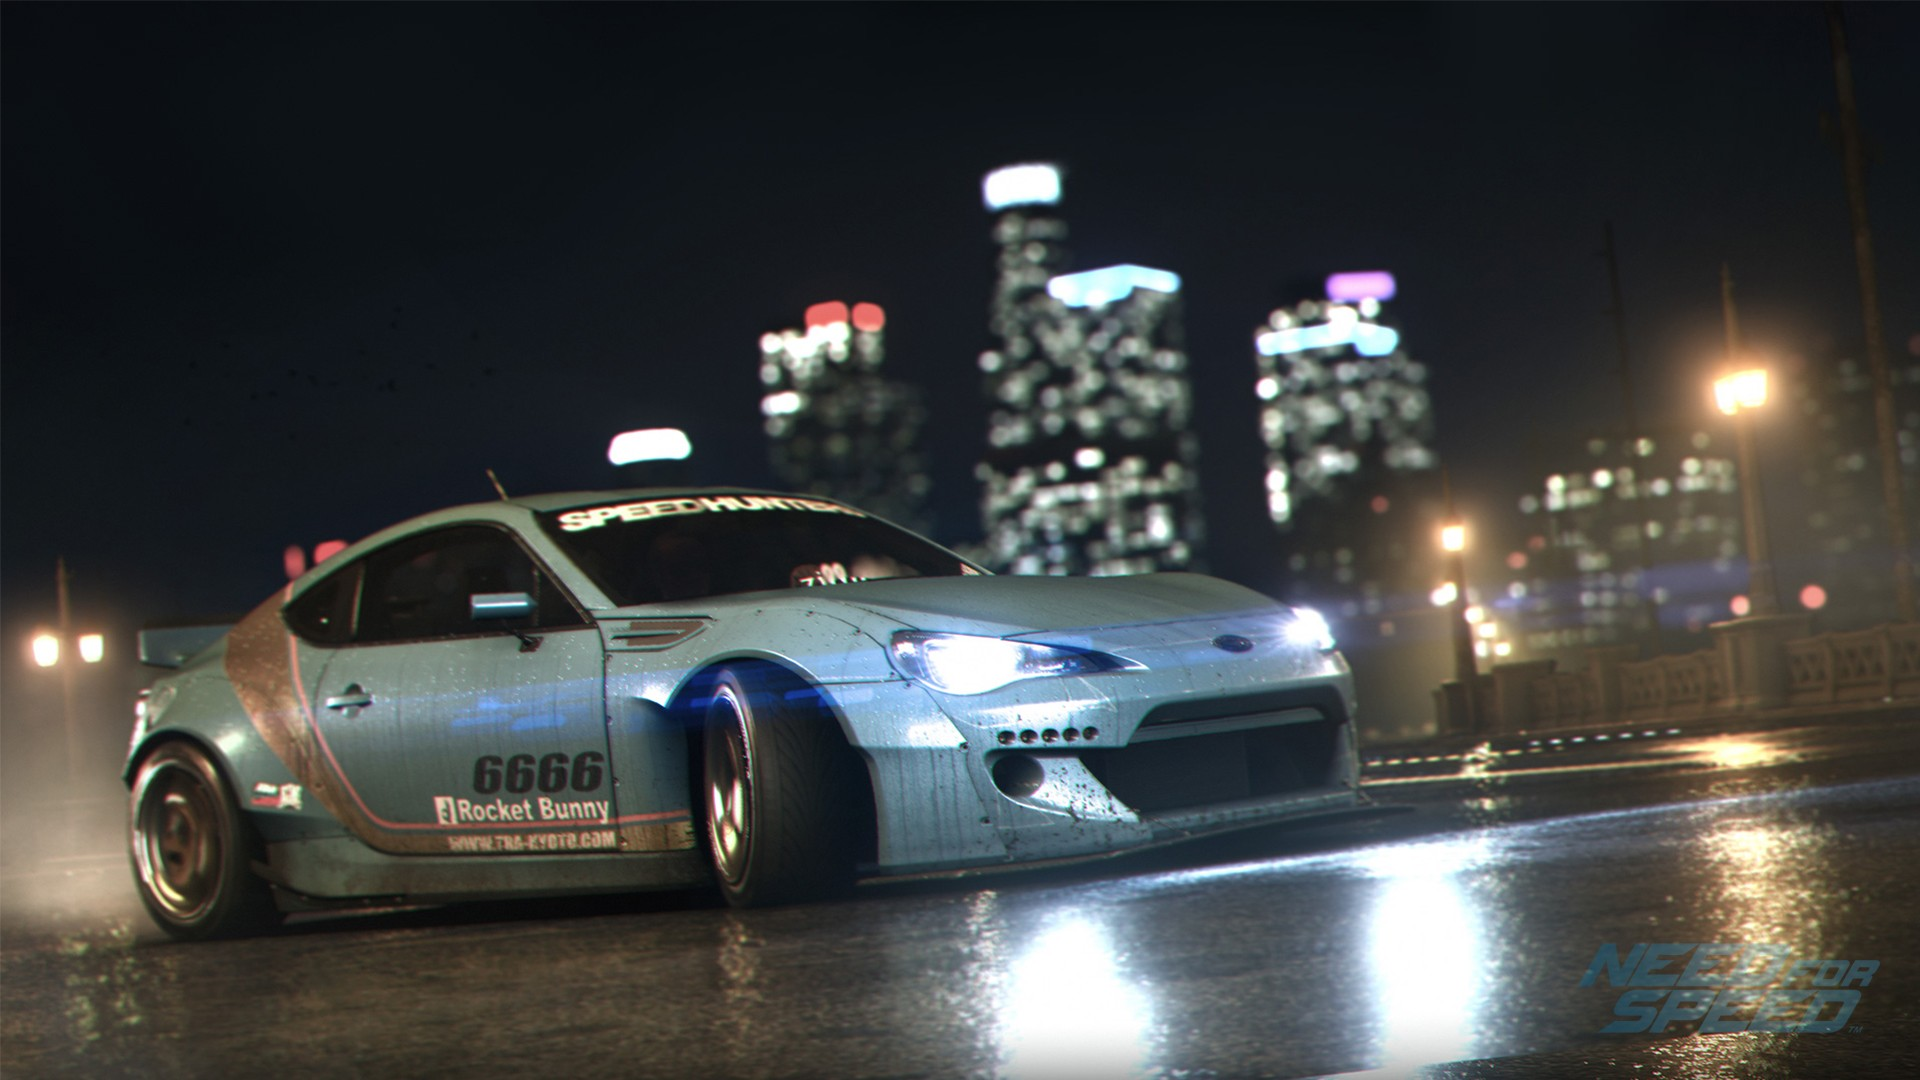 Car 5760x1080 Wallpaper Need For Speed 2015 Video Games Car Rocket Bunny